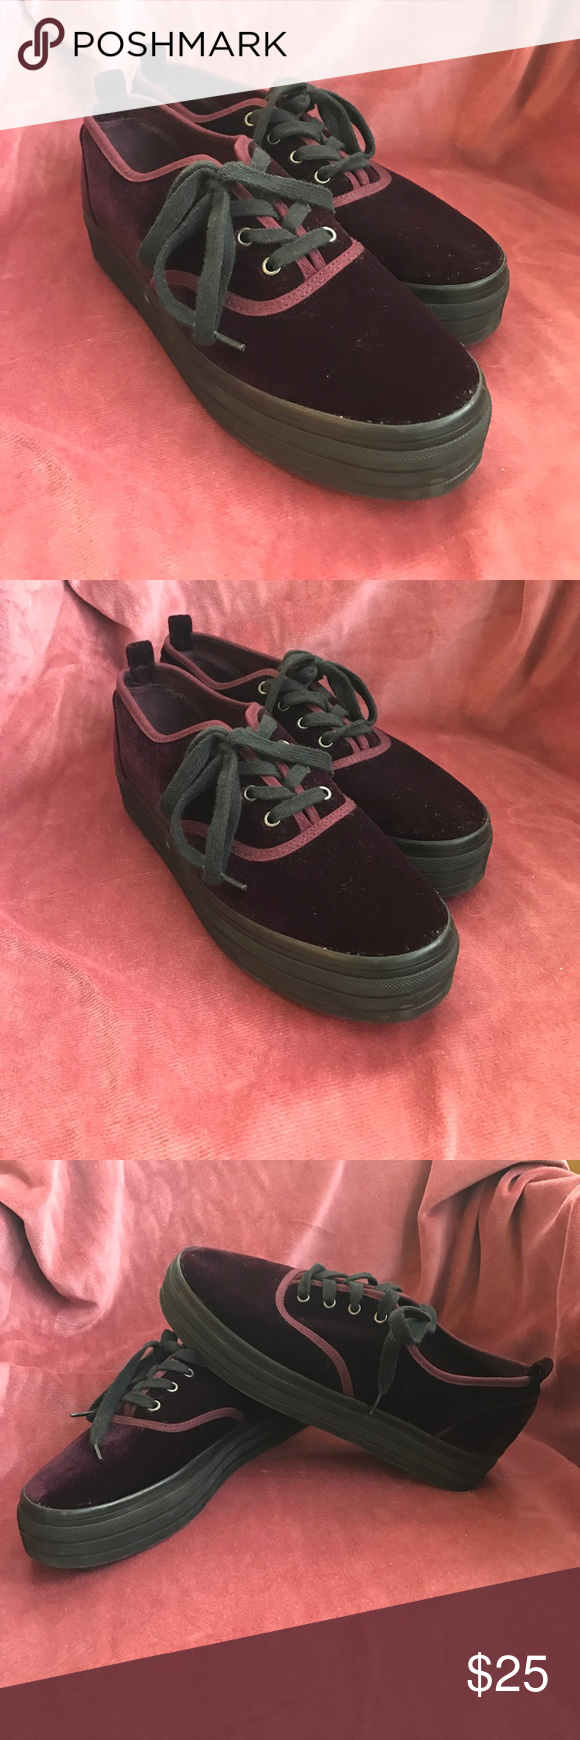 dcd9ebcda23d Burgundy Red wine Velvet Platform sneakers Burgundy red purple wine colored  velvet Platform Lace up sneakers. Worn once and in like new condition!